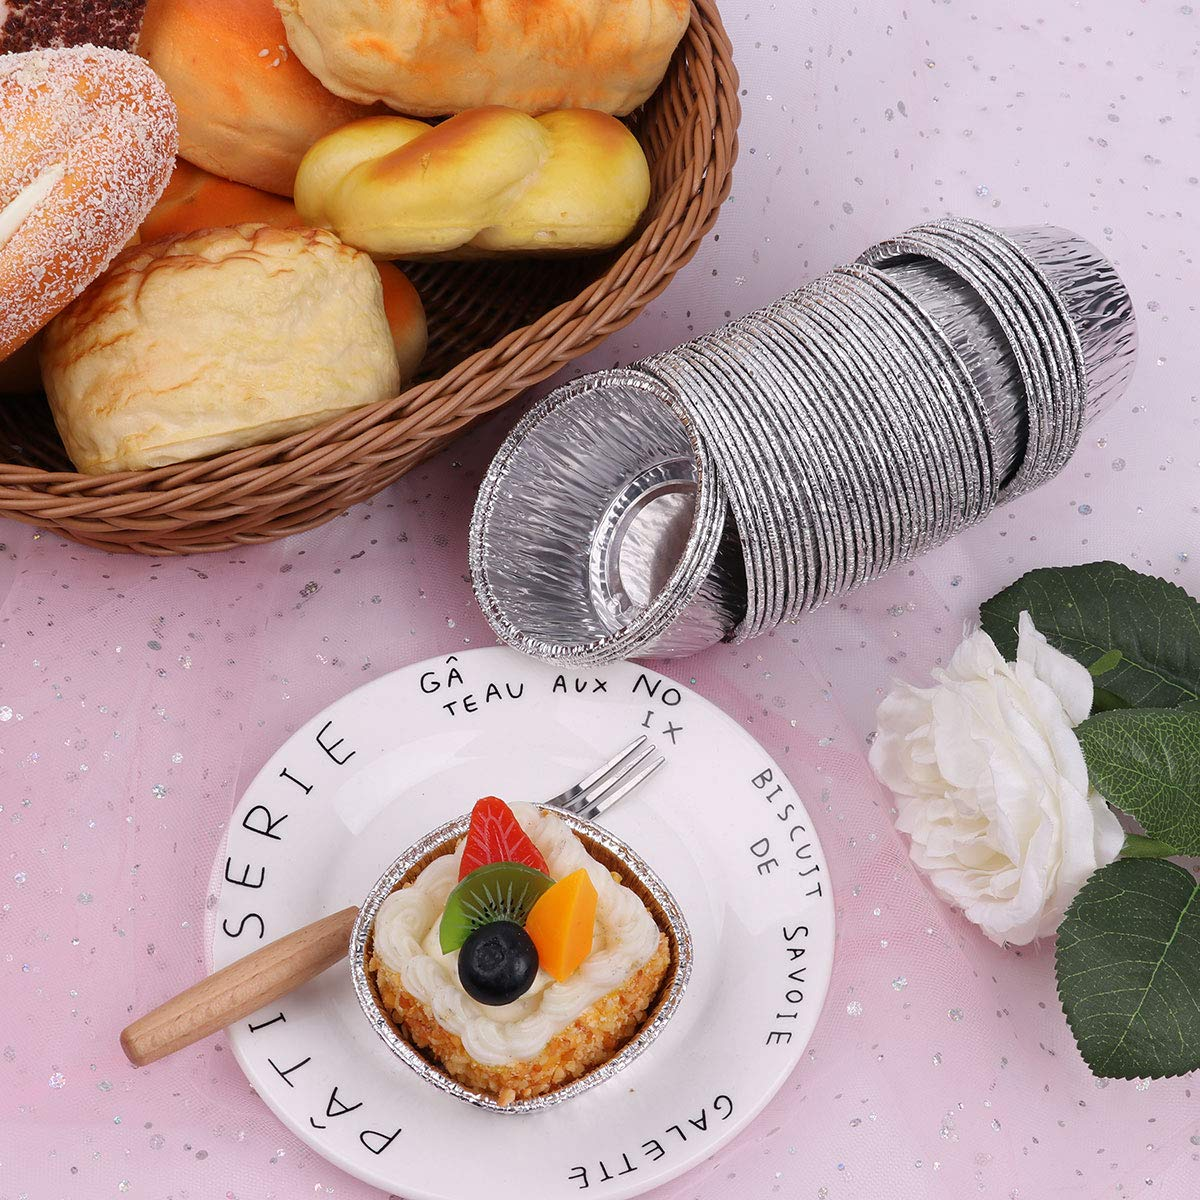 CHICTRY 150Pcs Aluminum Foil Mini Muffin Ramekin Cups Non-Stick Disposable Round Cupcake Pudding Cups Baking Tin Pans for Cake Dessert Quiche Tarts Silver One Size